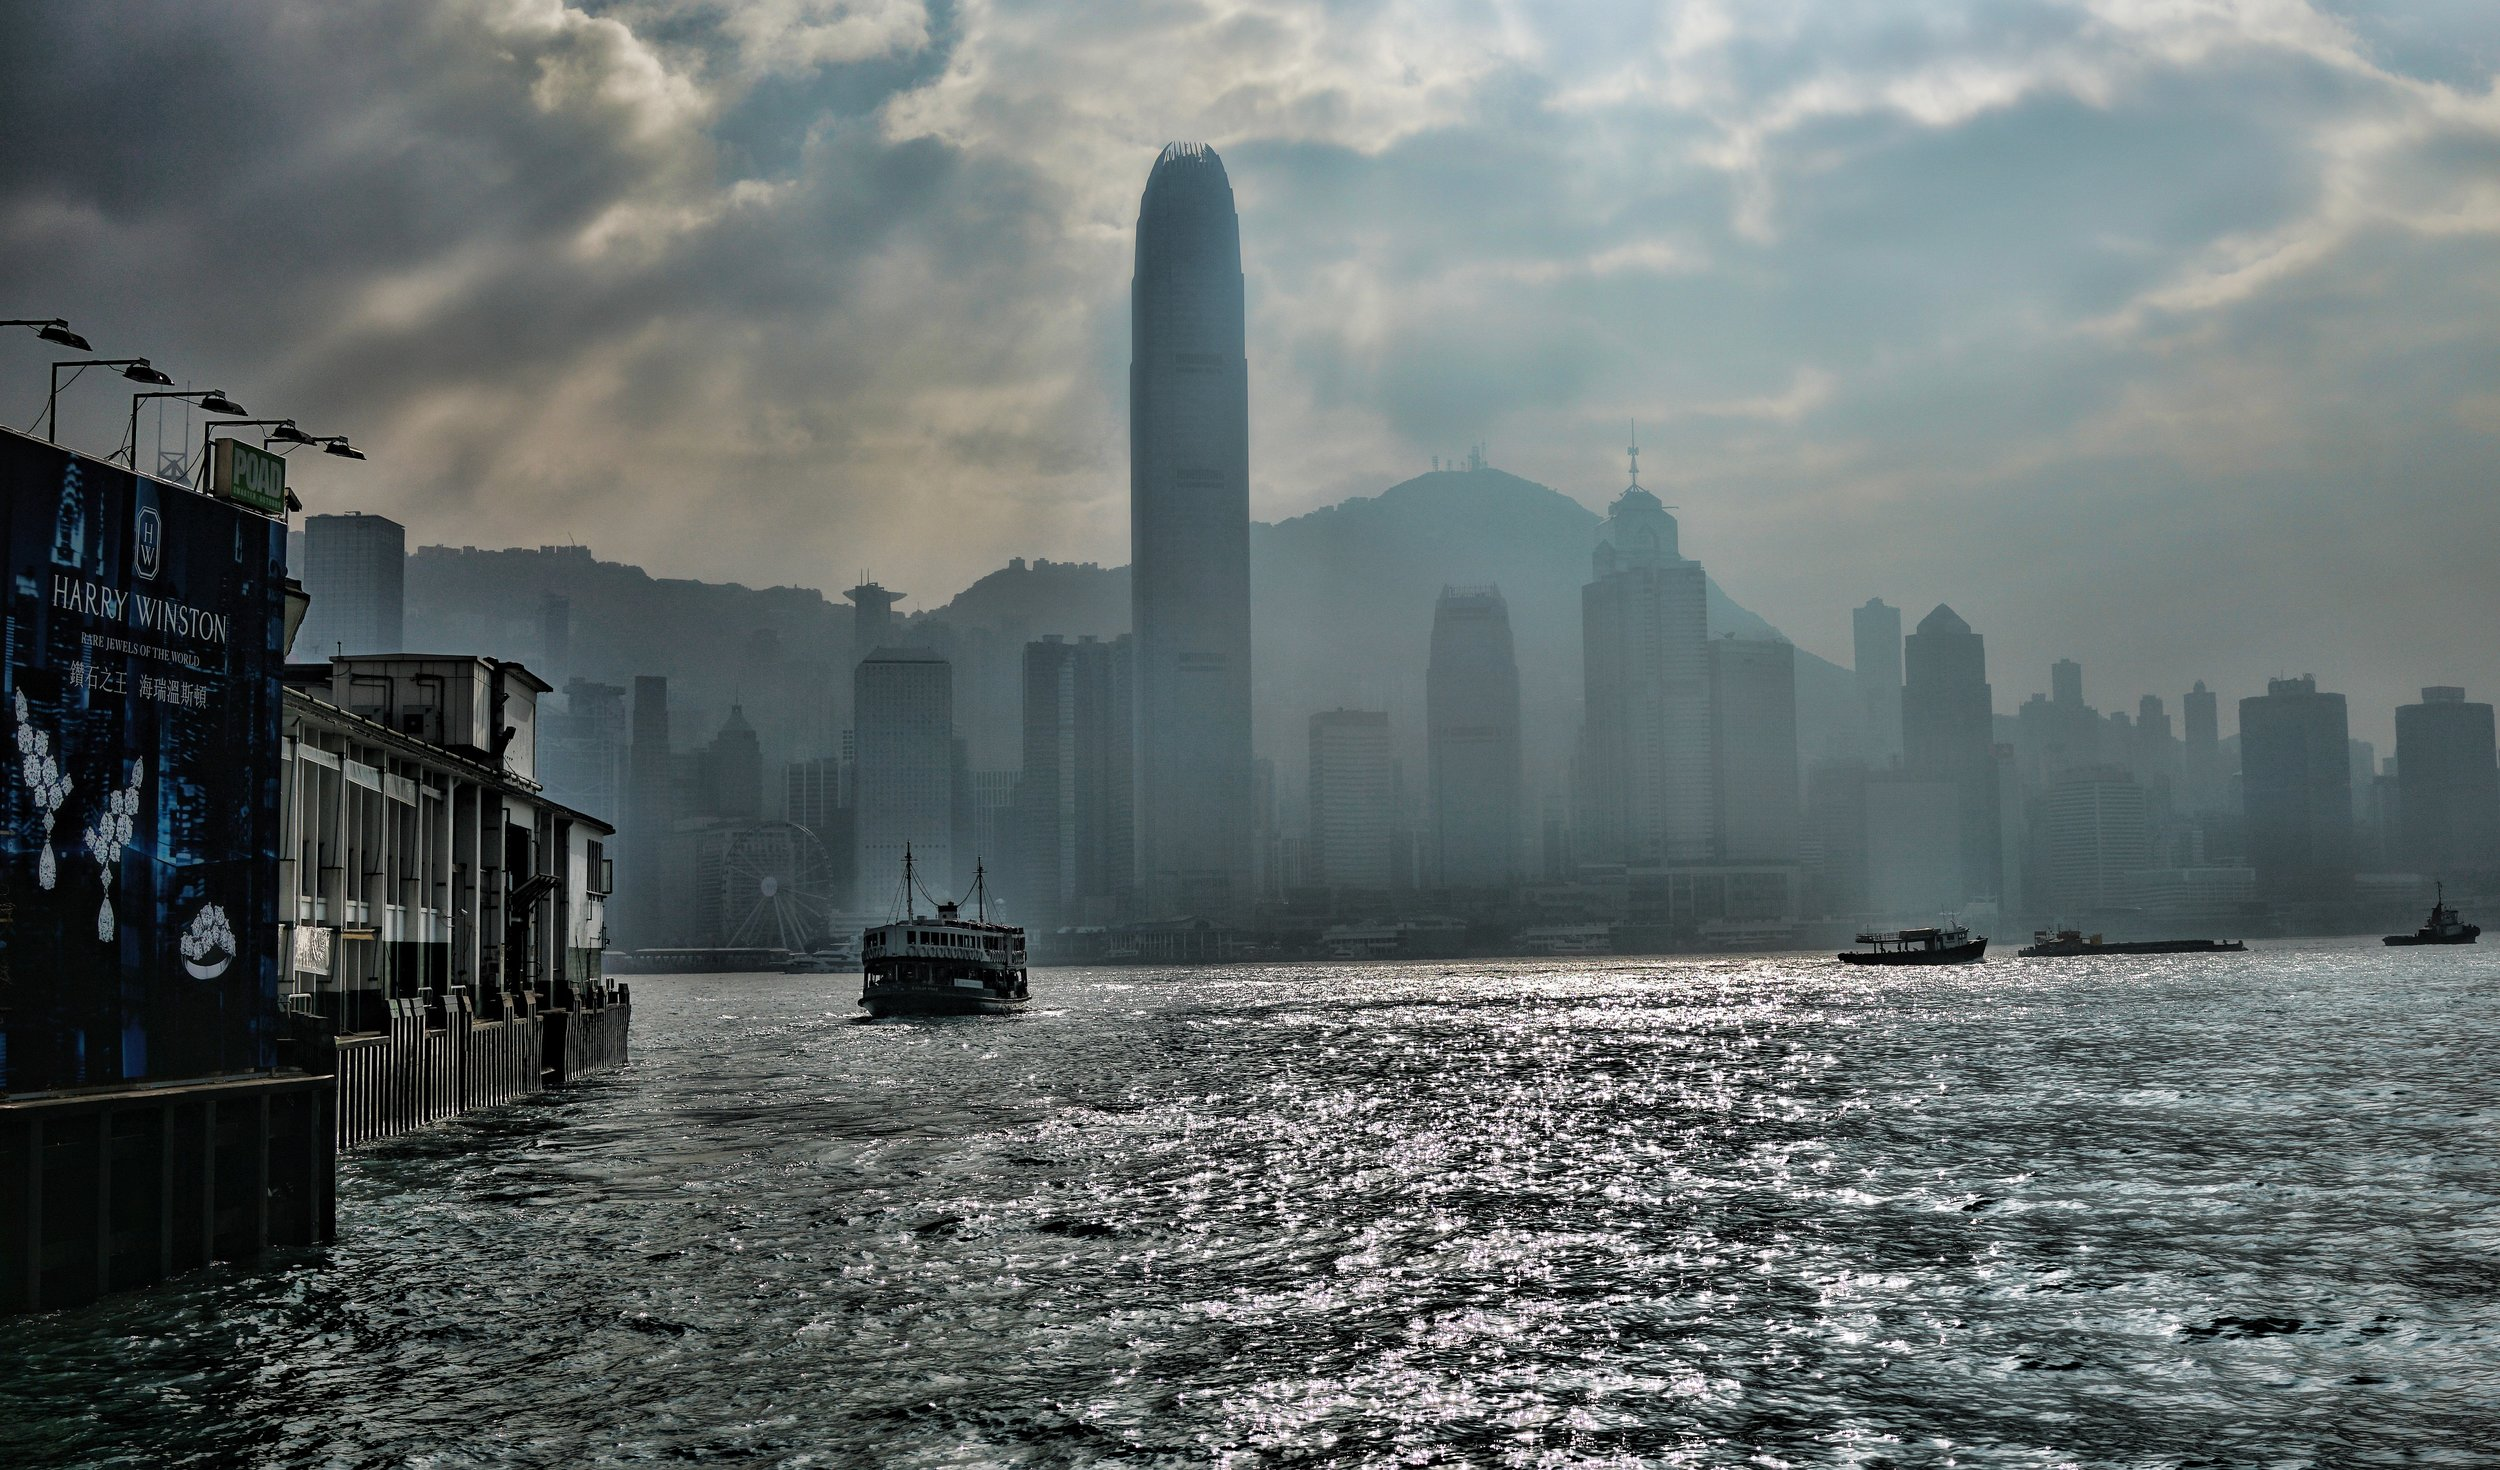 … and I shoot in all weather conditions, even a Hong Kong hazy day in winter offers up some great shots -